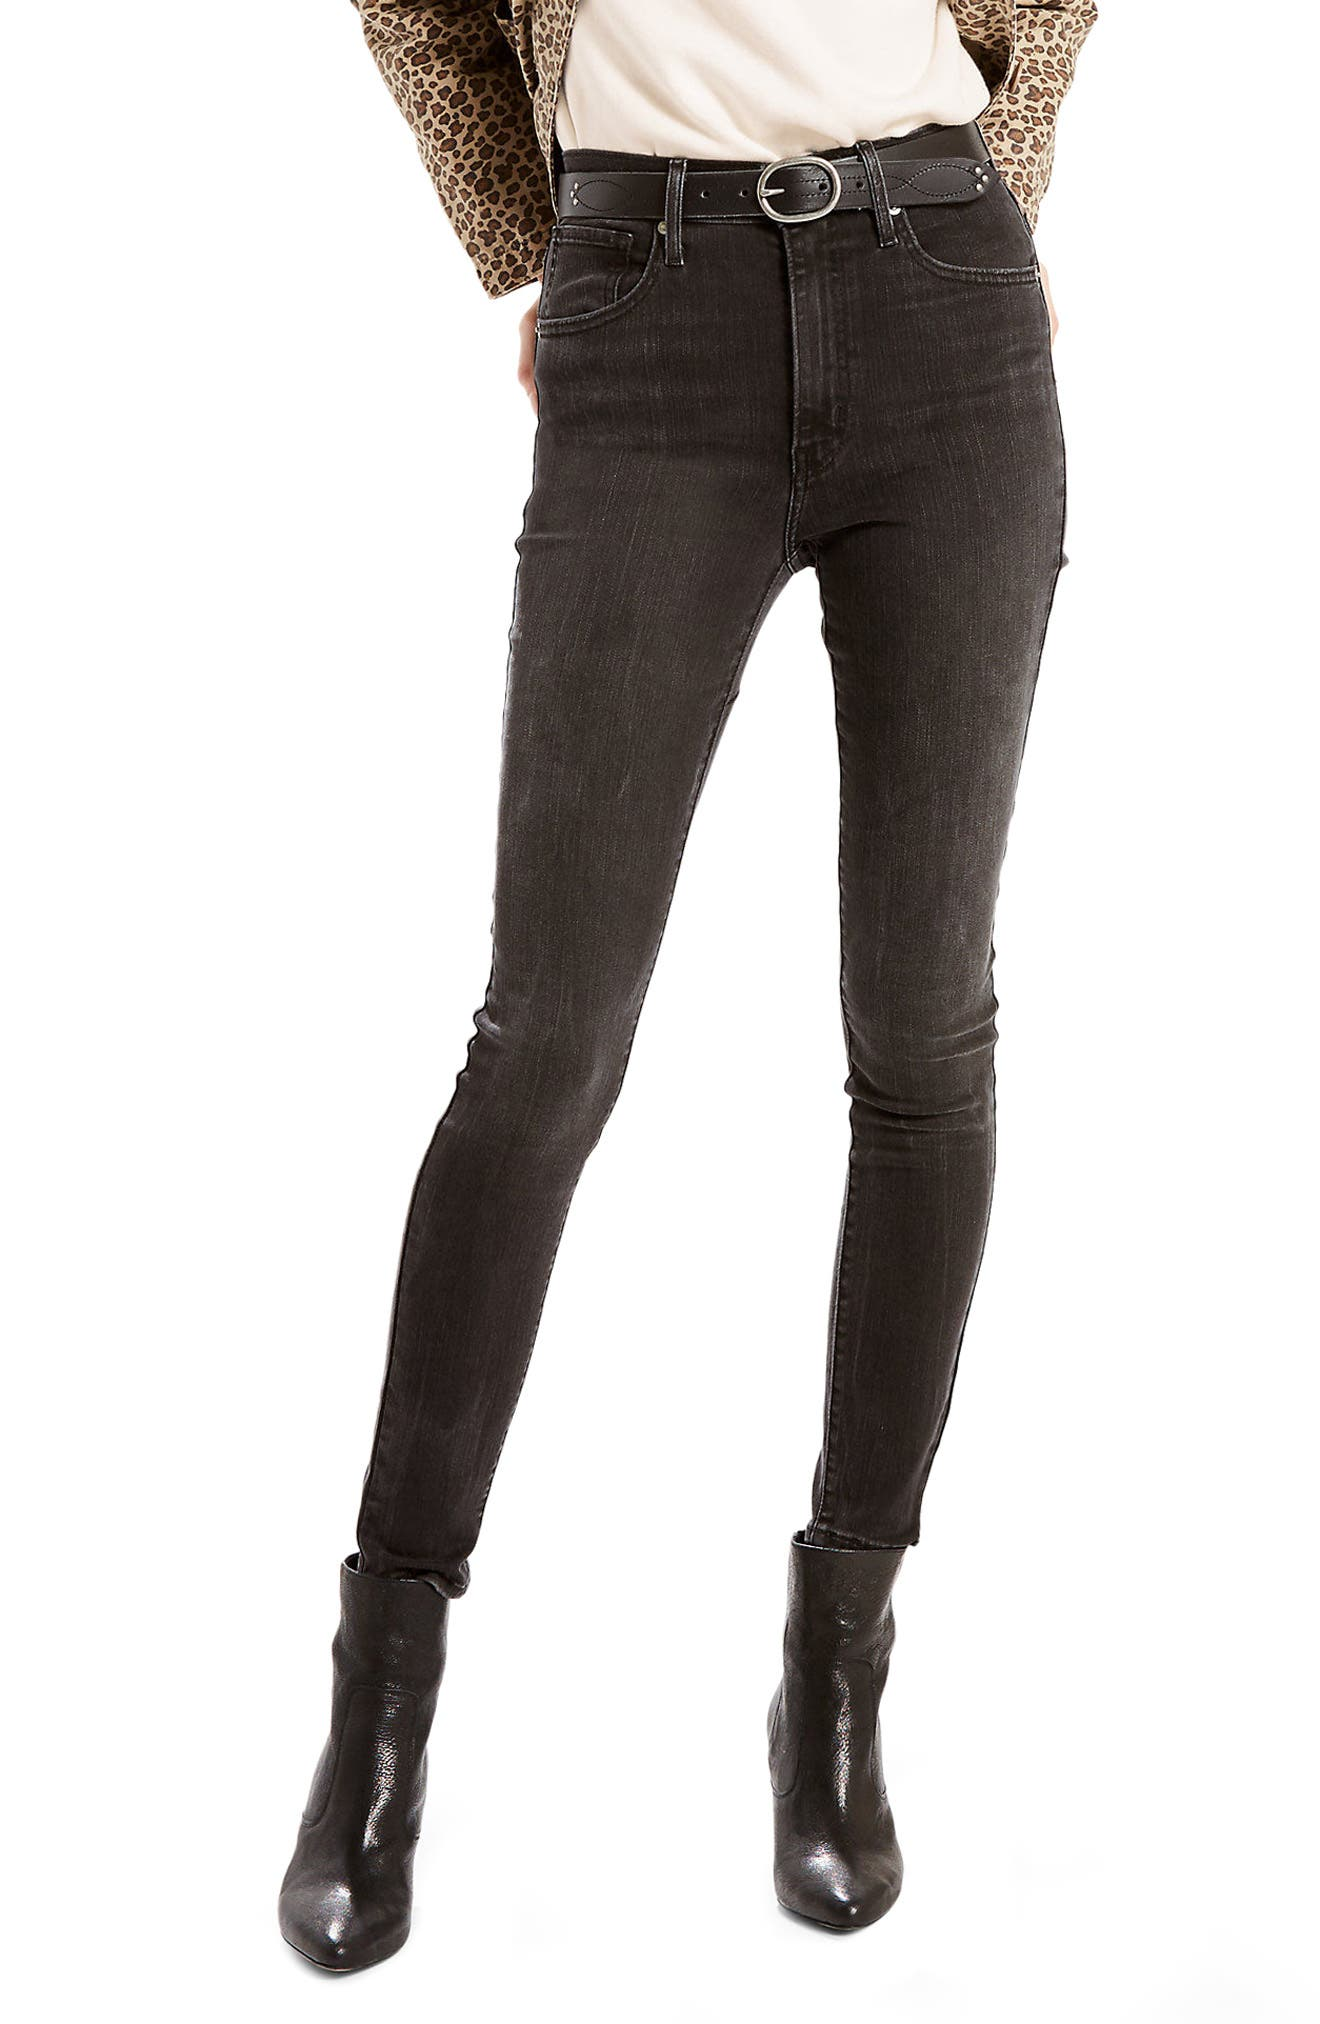 Mile High High Waist Super Skinny Jeans,                         Main,                         color, Sf Nights